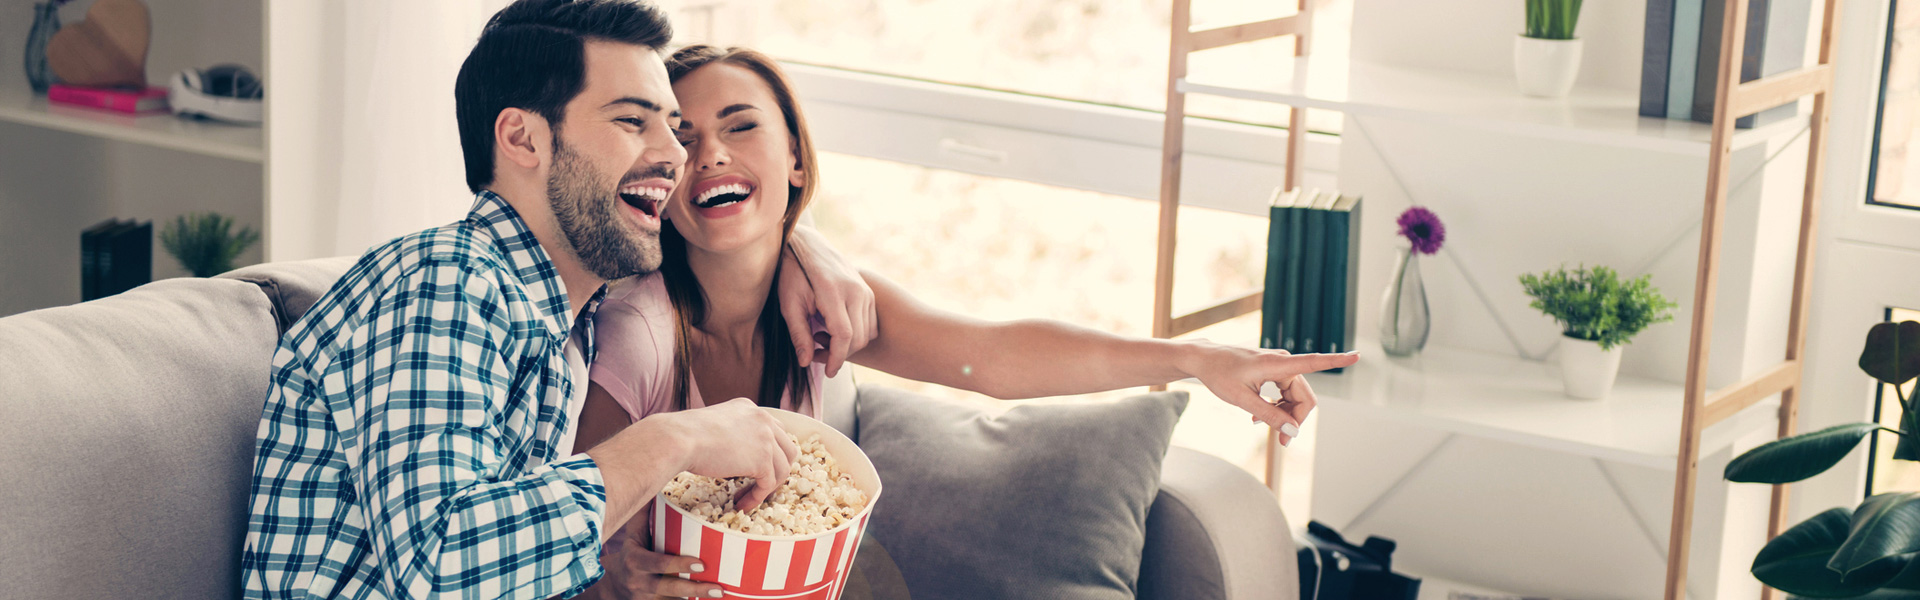 Couple at home eating popcorn laughing